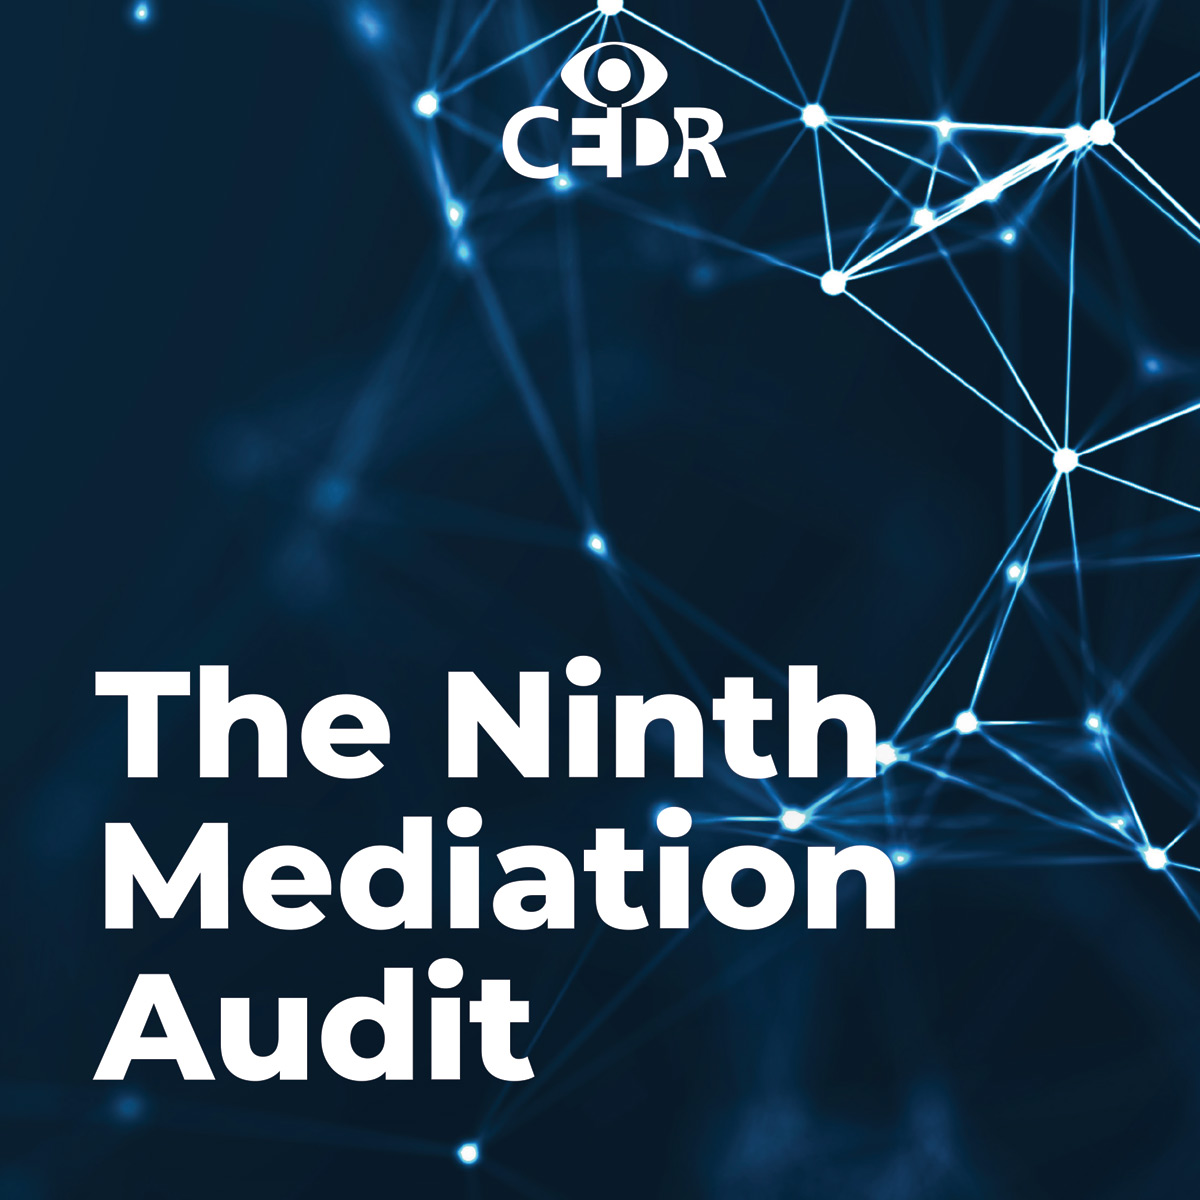 CEDR 2021 | The Ninth Mediation Audit, A survey of commercial mediator attitudes and experience in the United Kingdom.